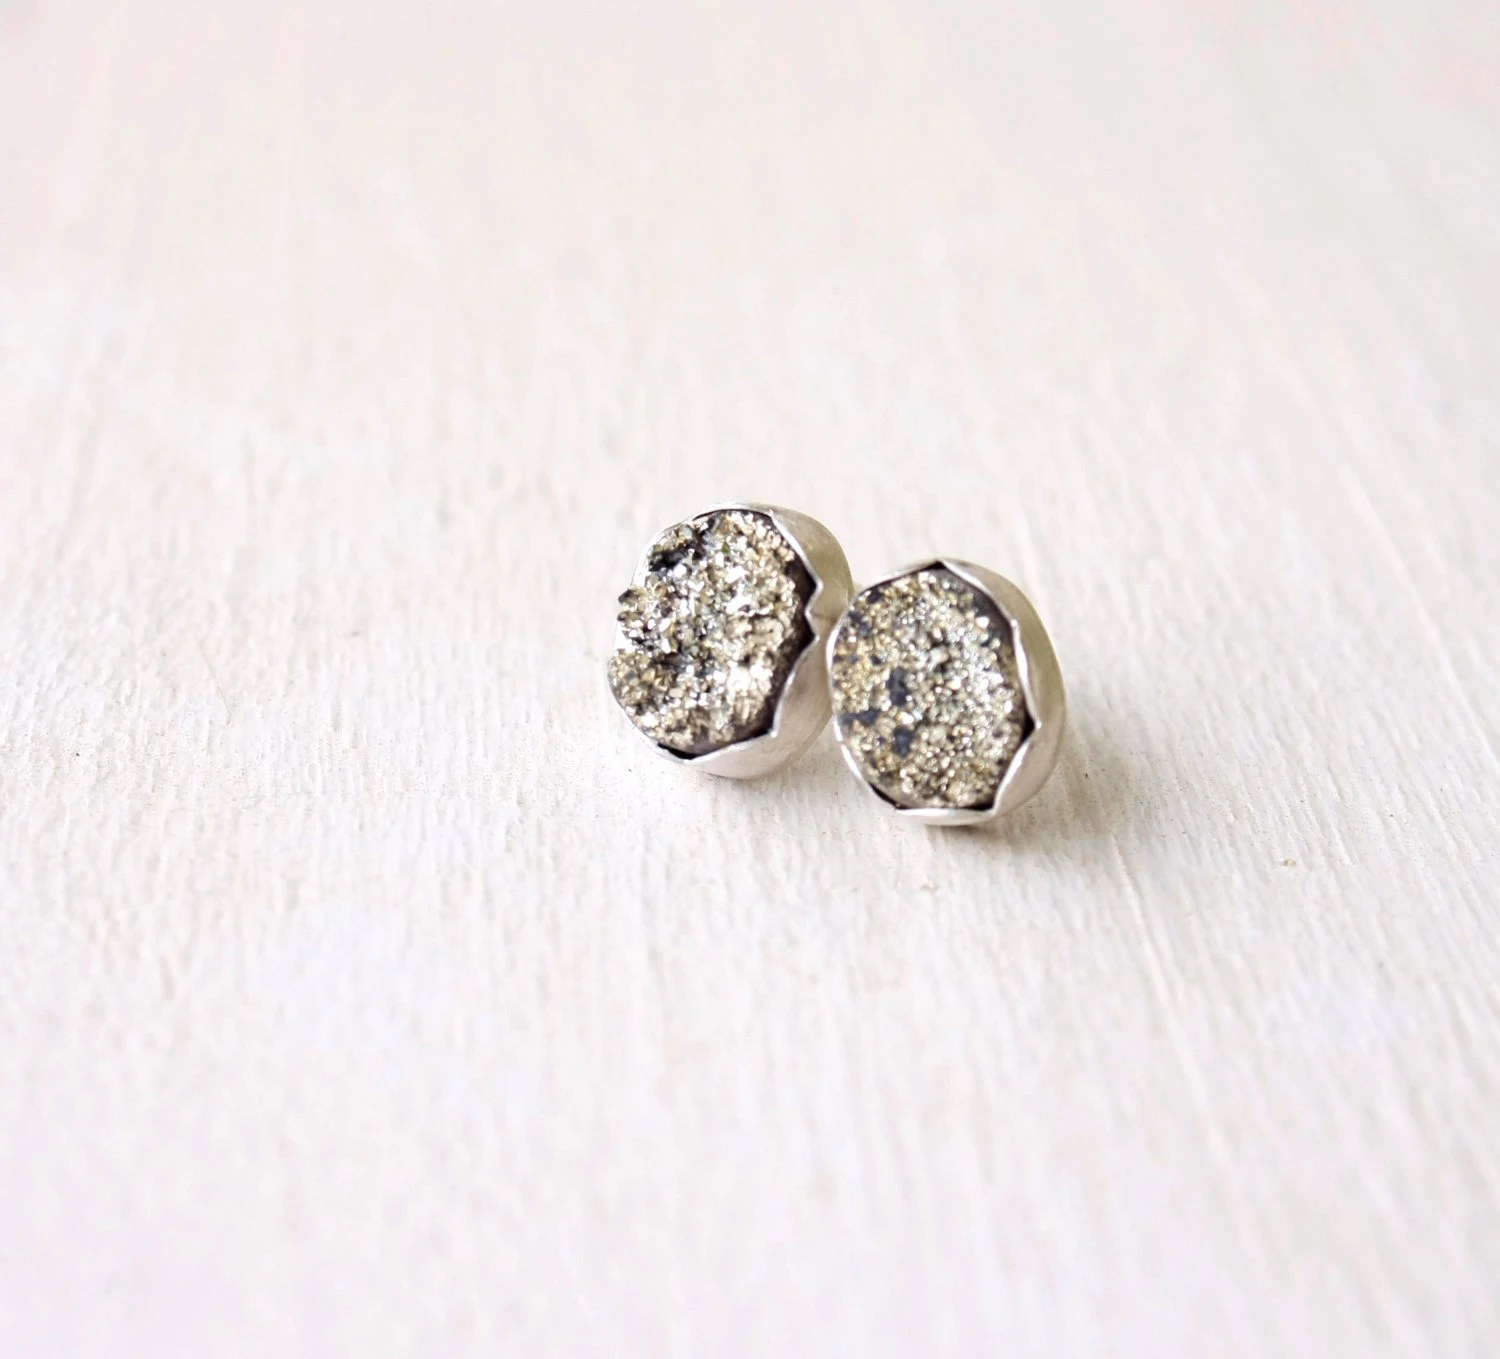 Silver Druzy post earrings / oval druzy stud earrings / silver metallic posts / small oval stud earrings / Handmade FREE SHIPPING - SilverLinesJewelry